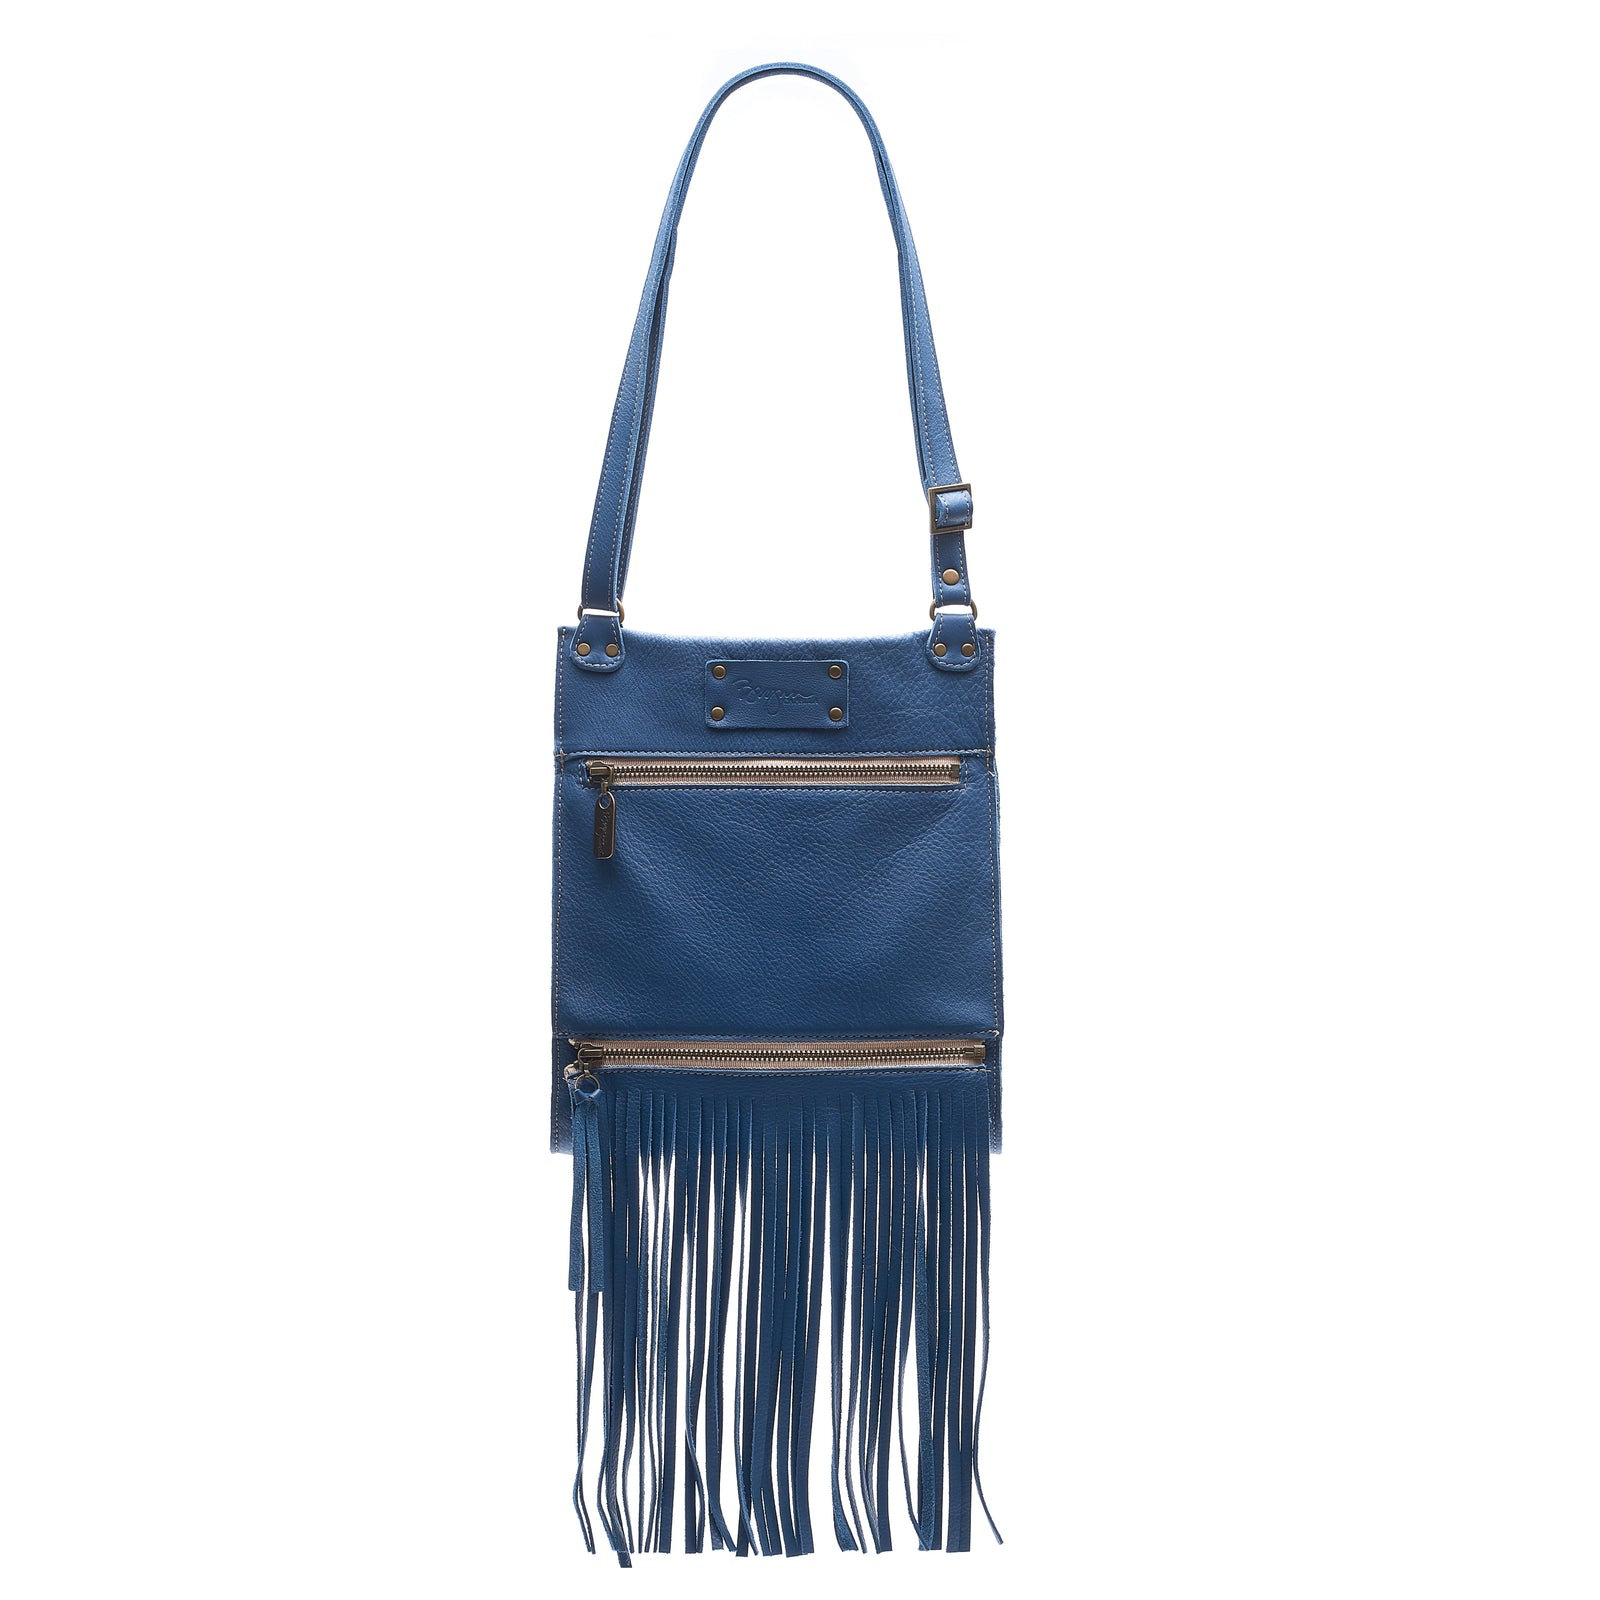 Kari Fringe Crossbody - Moorea Bay - Brynn Capella, Small Crossbody